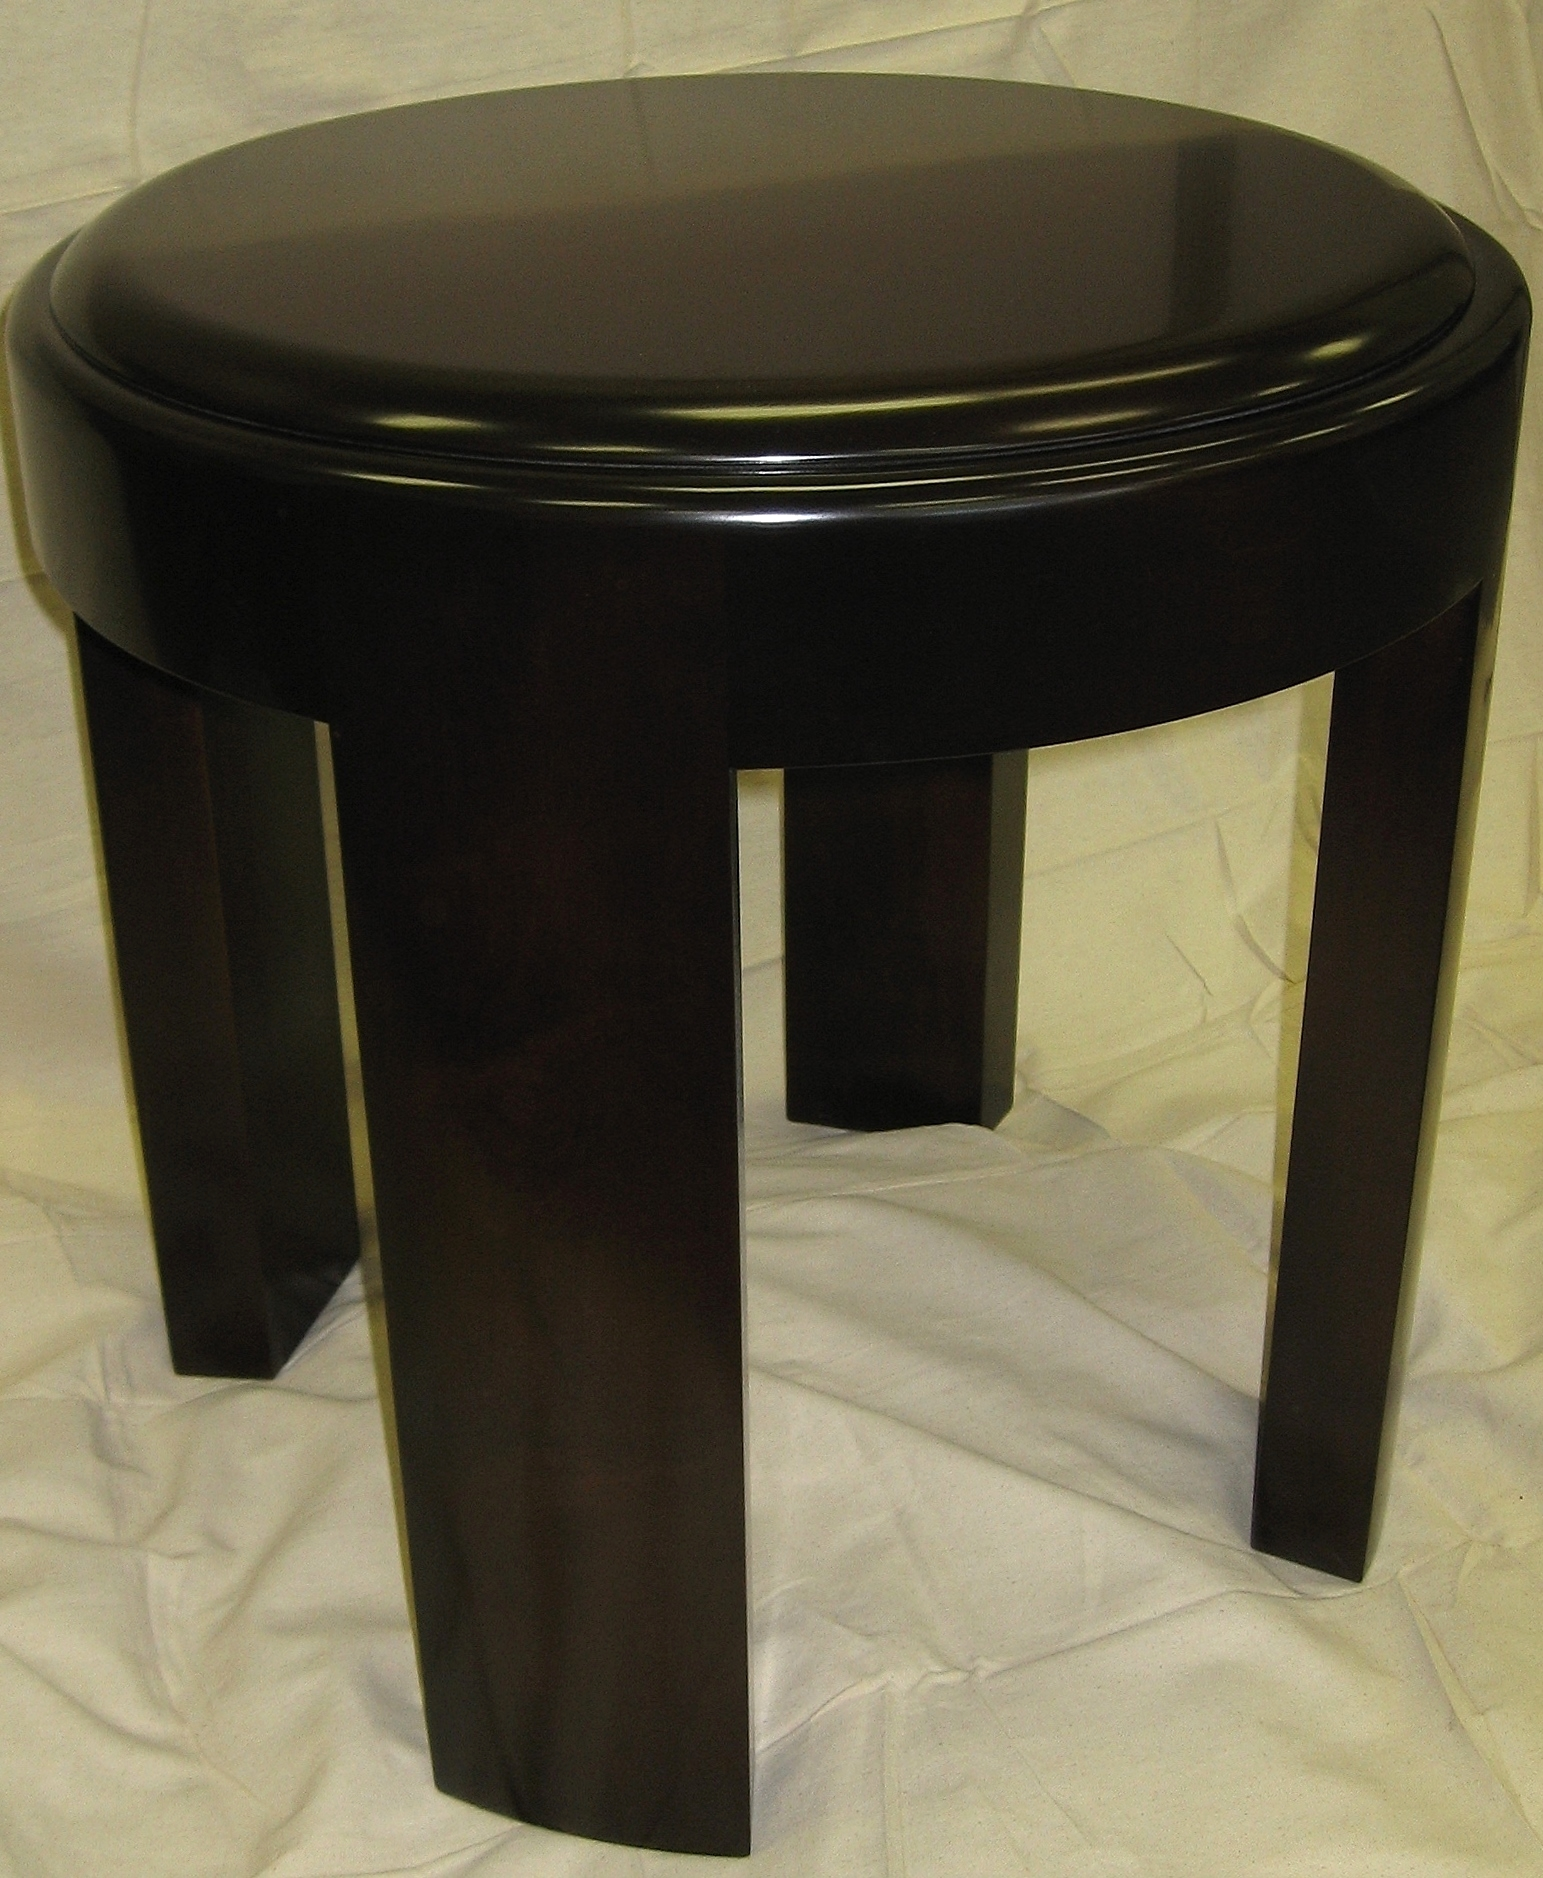 small-traditional-style-round-side-table.JPG